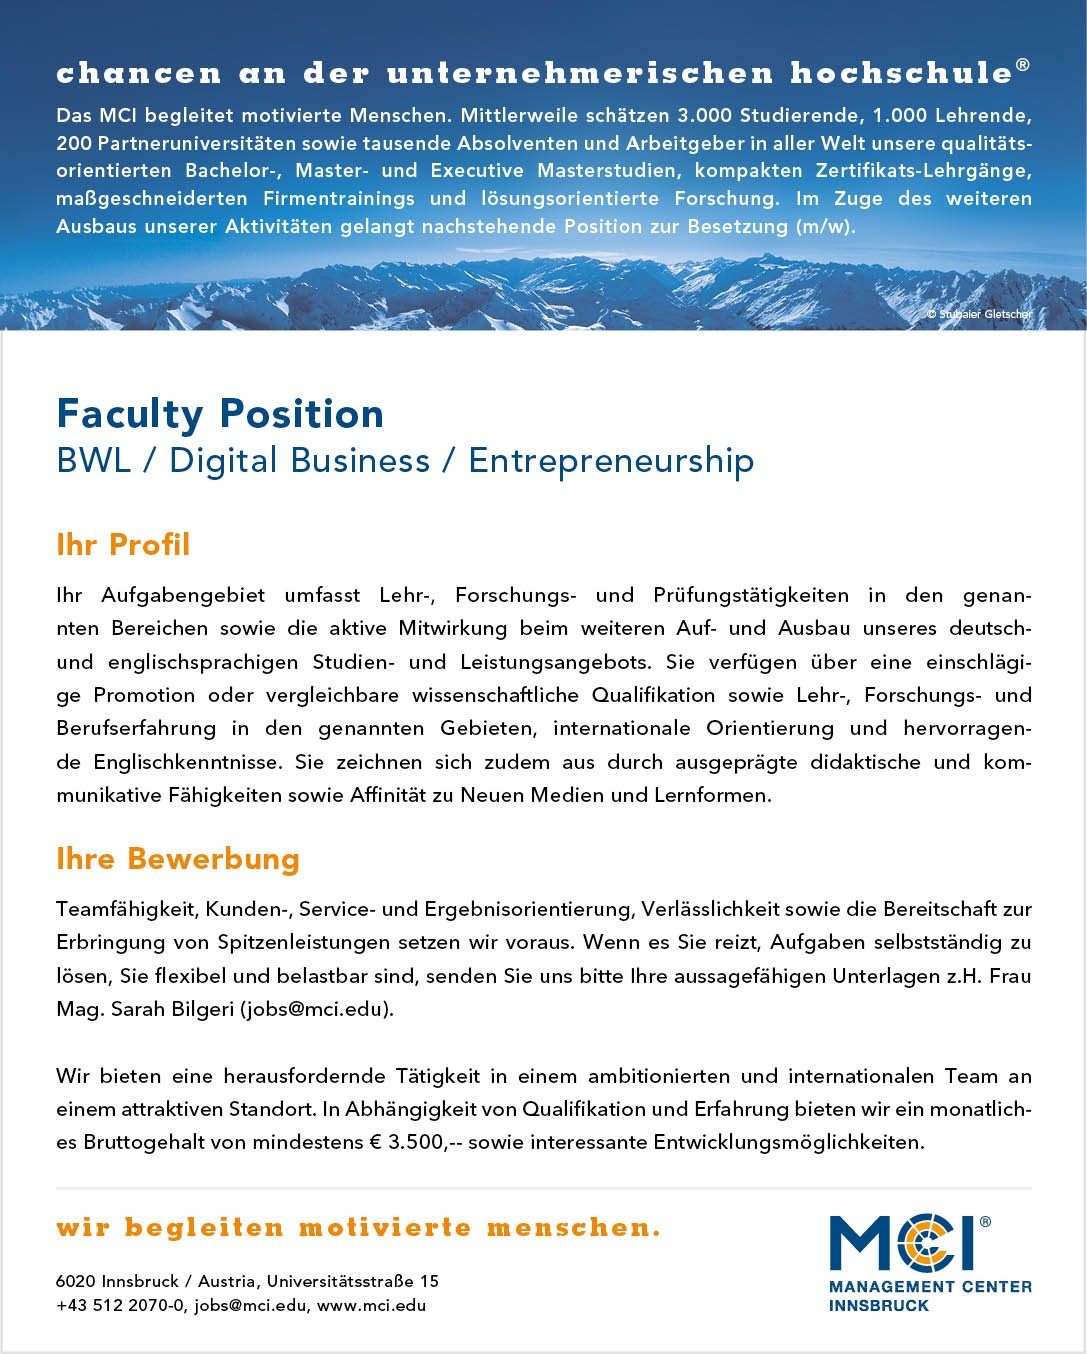 Faculty Position - Digital Business Management / Entrepreneurship